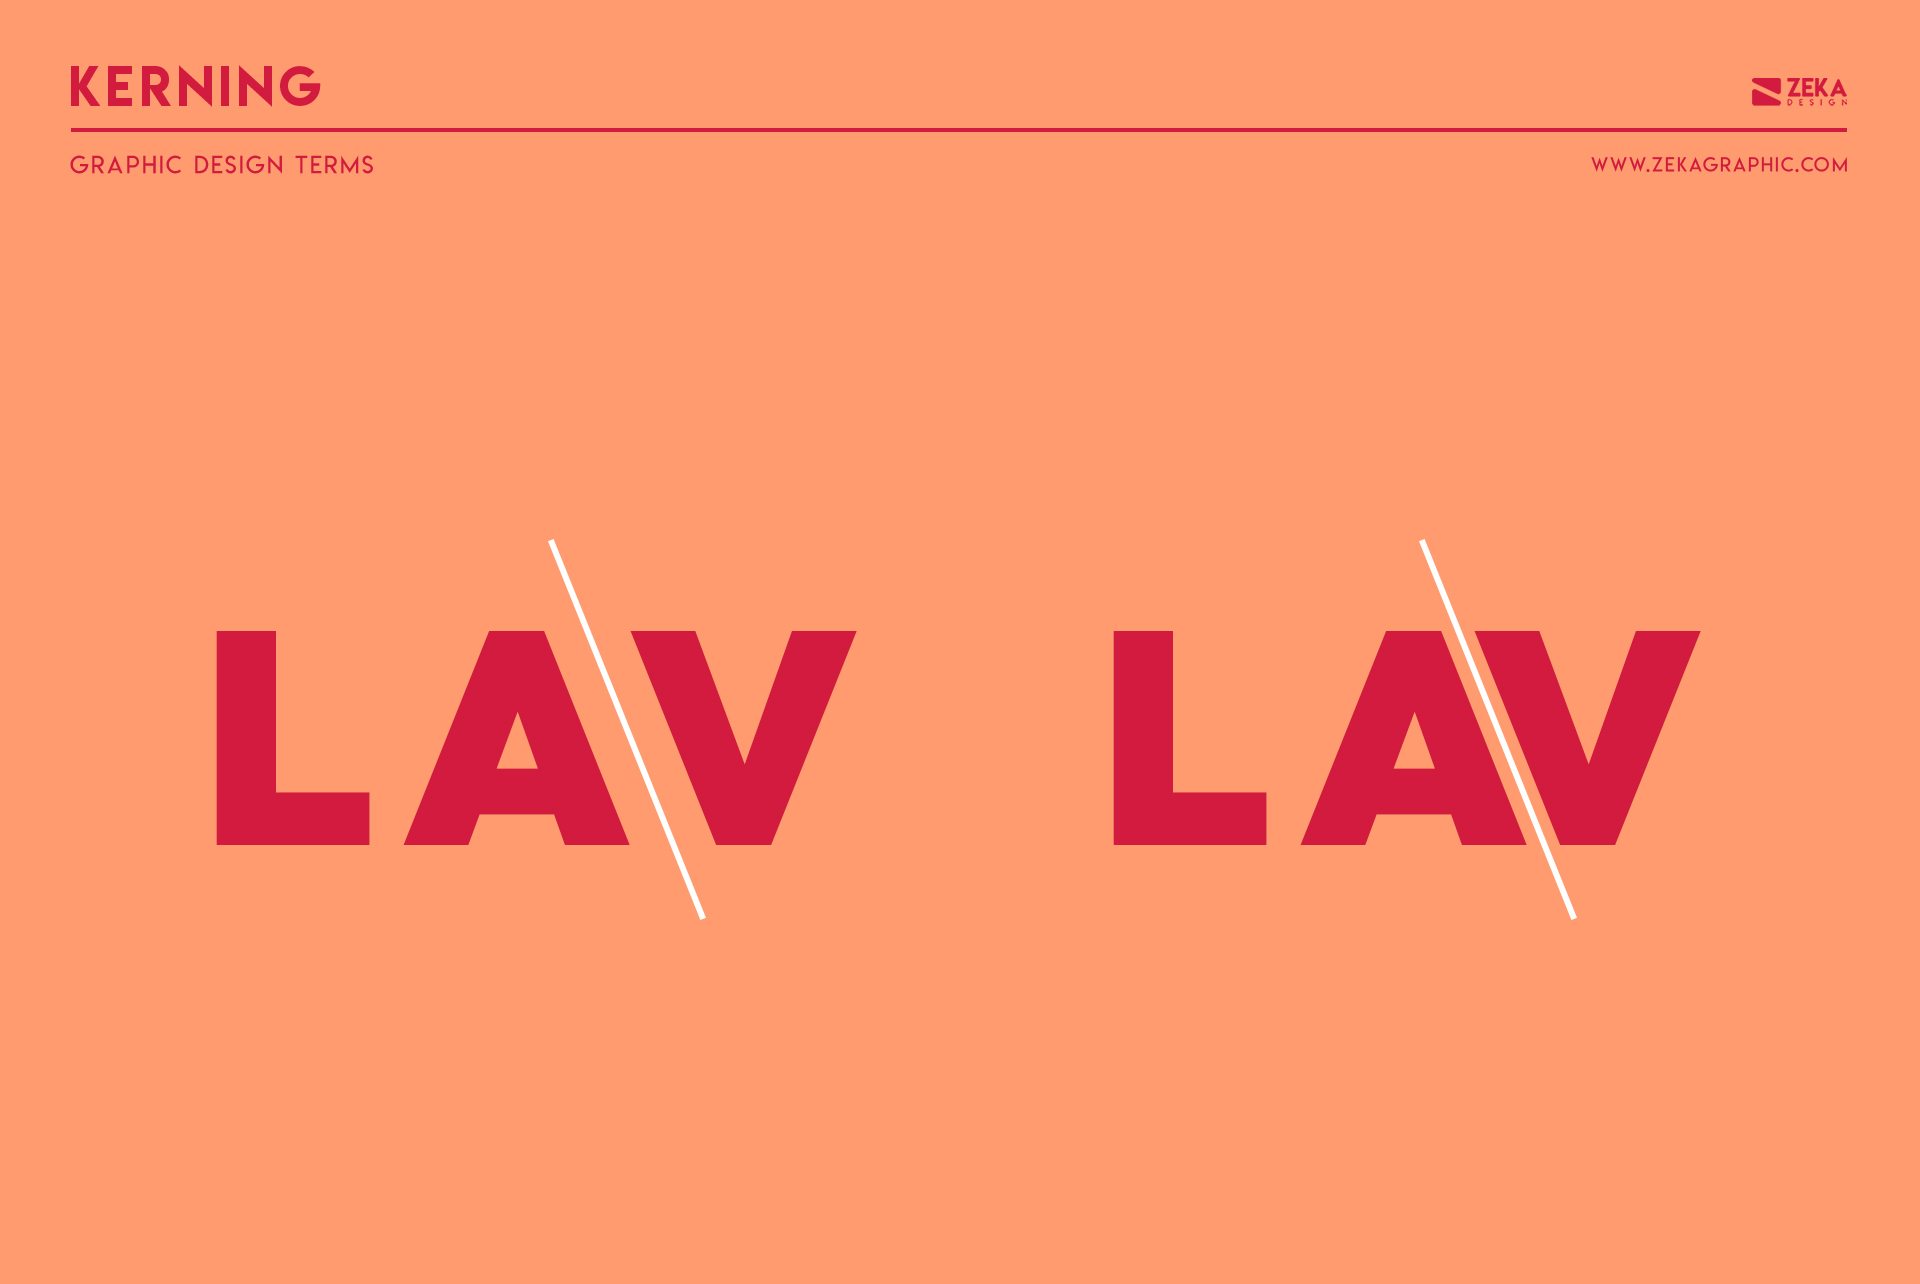 Kerning Typography Graphic Design Terms